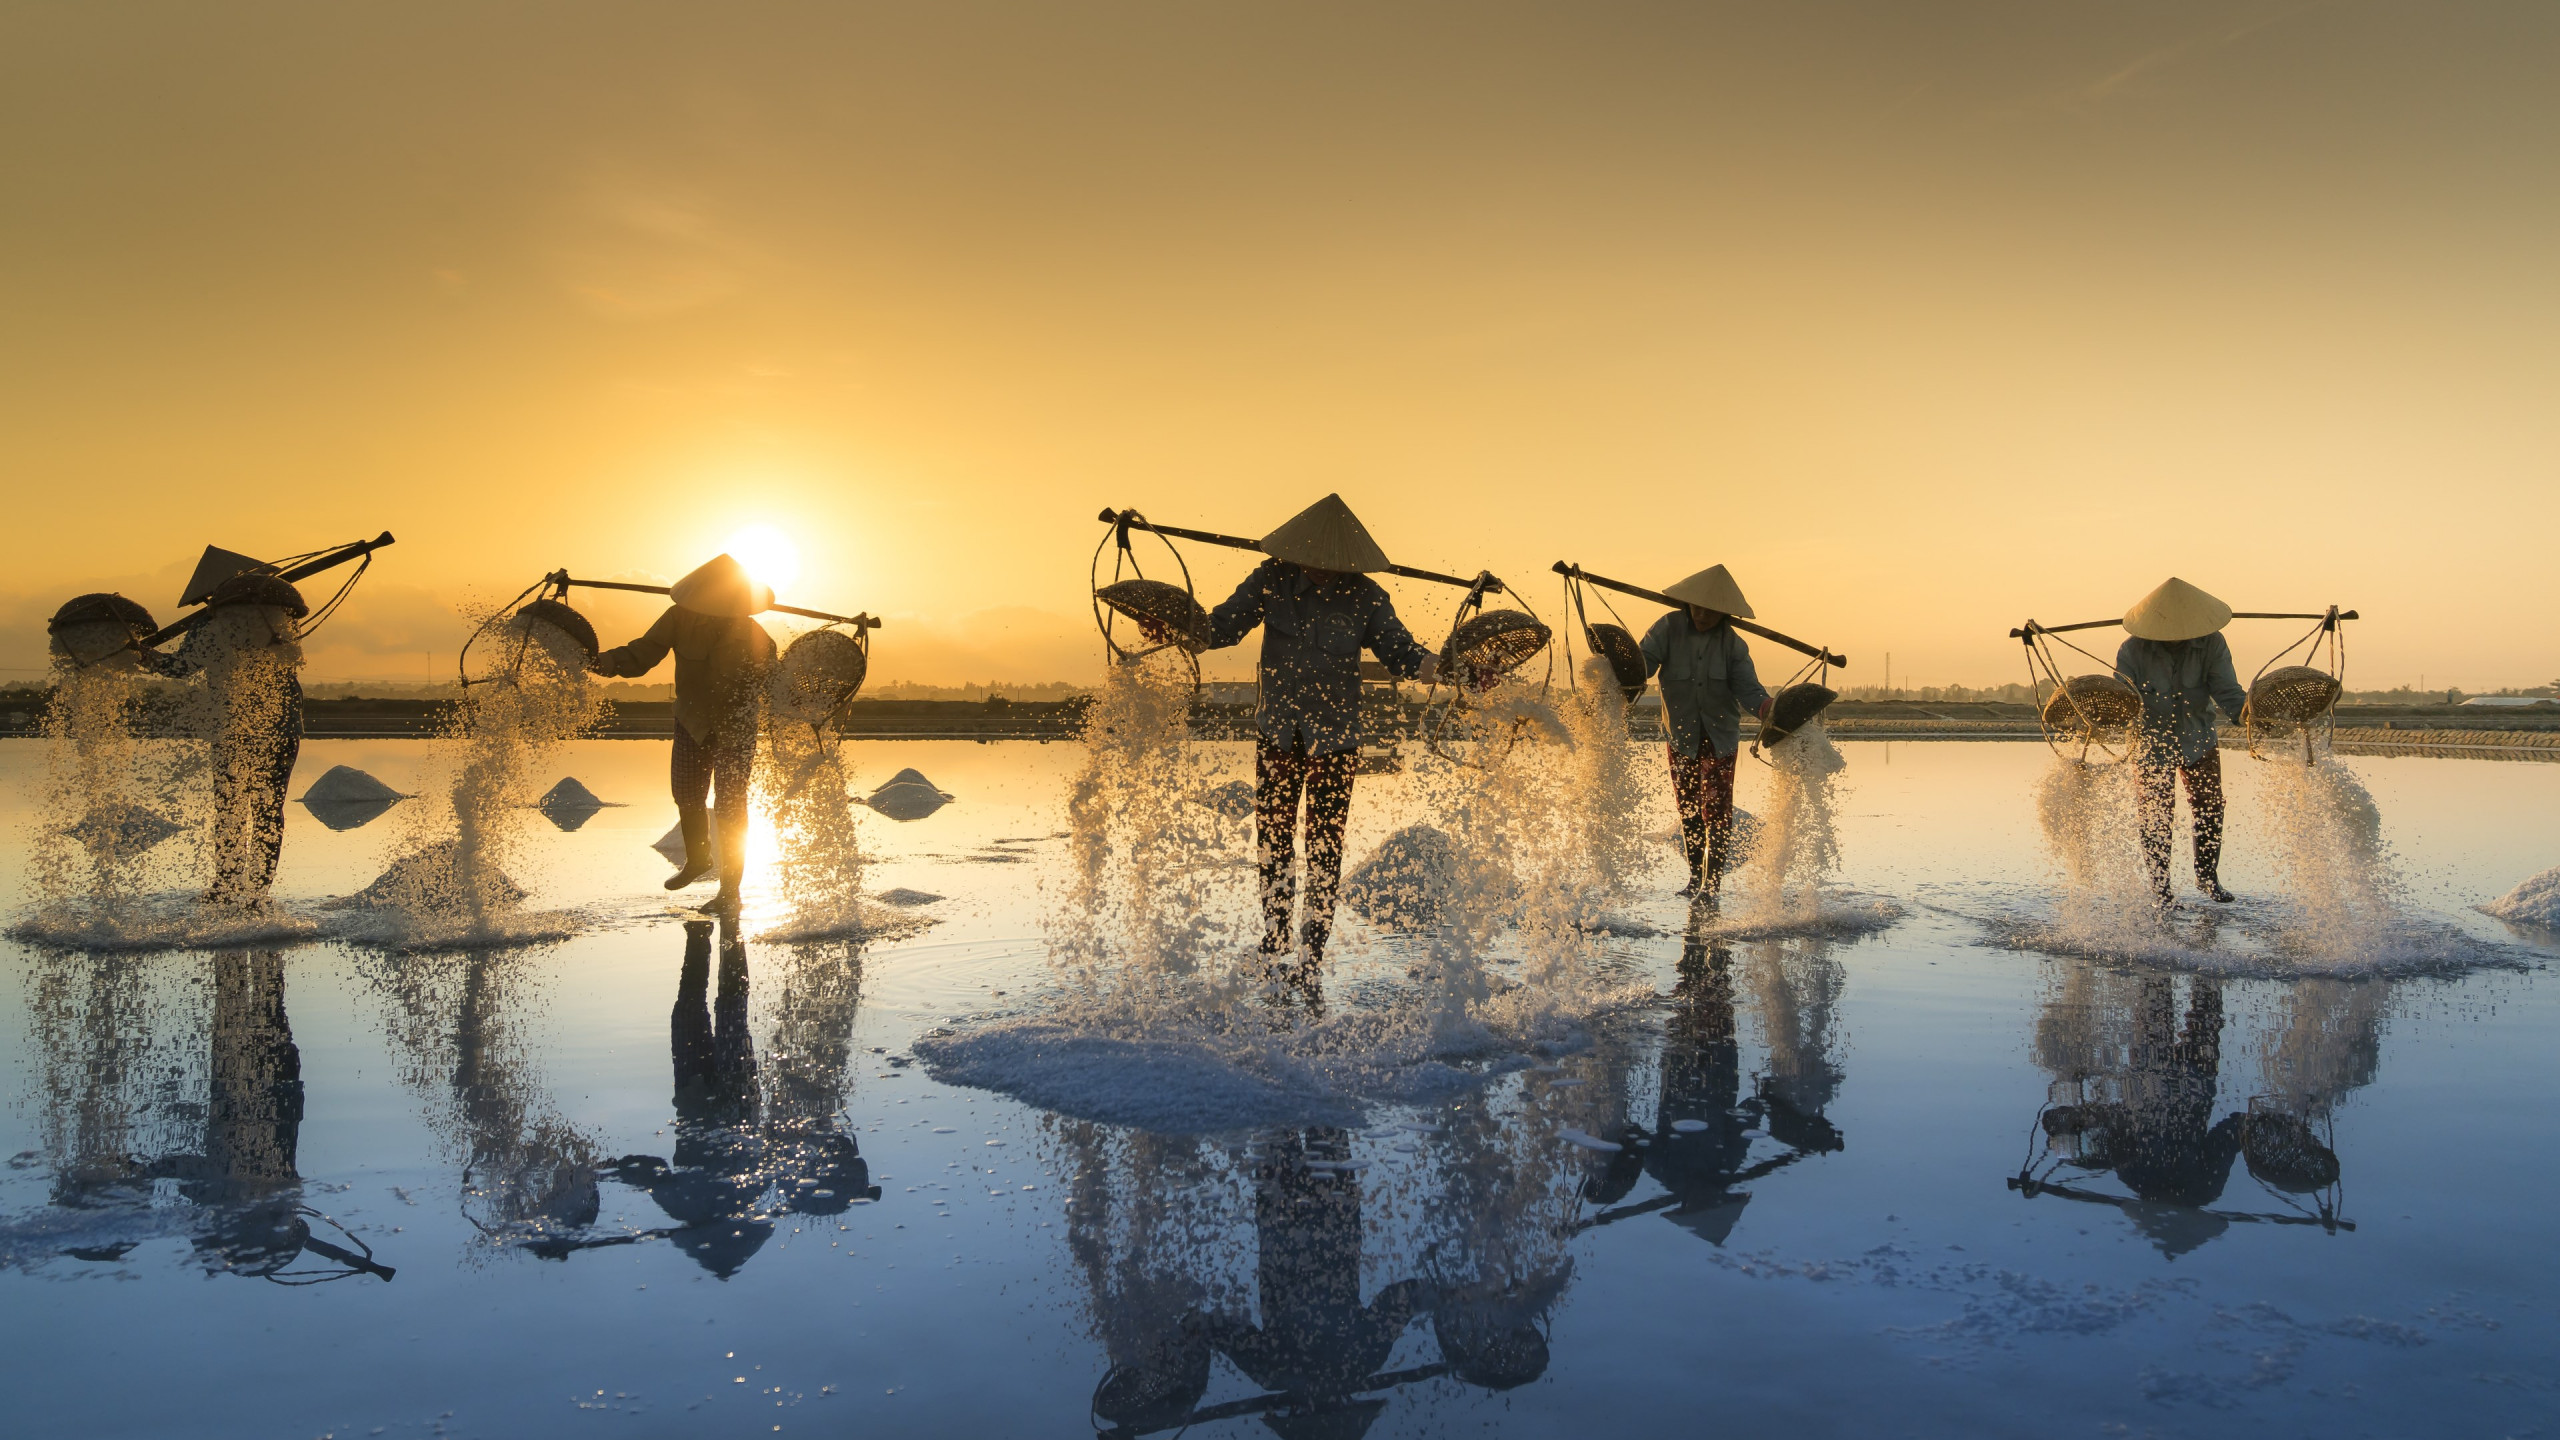 People harvesting salt in Vietnam | 2560x1440 wallpaper